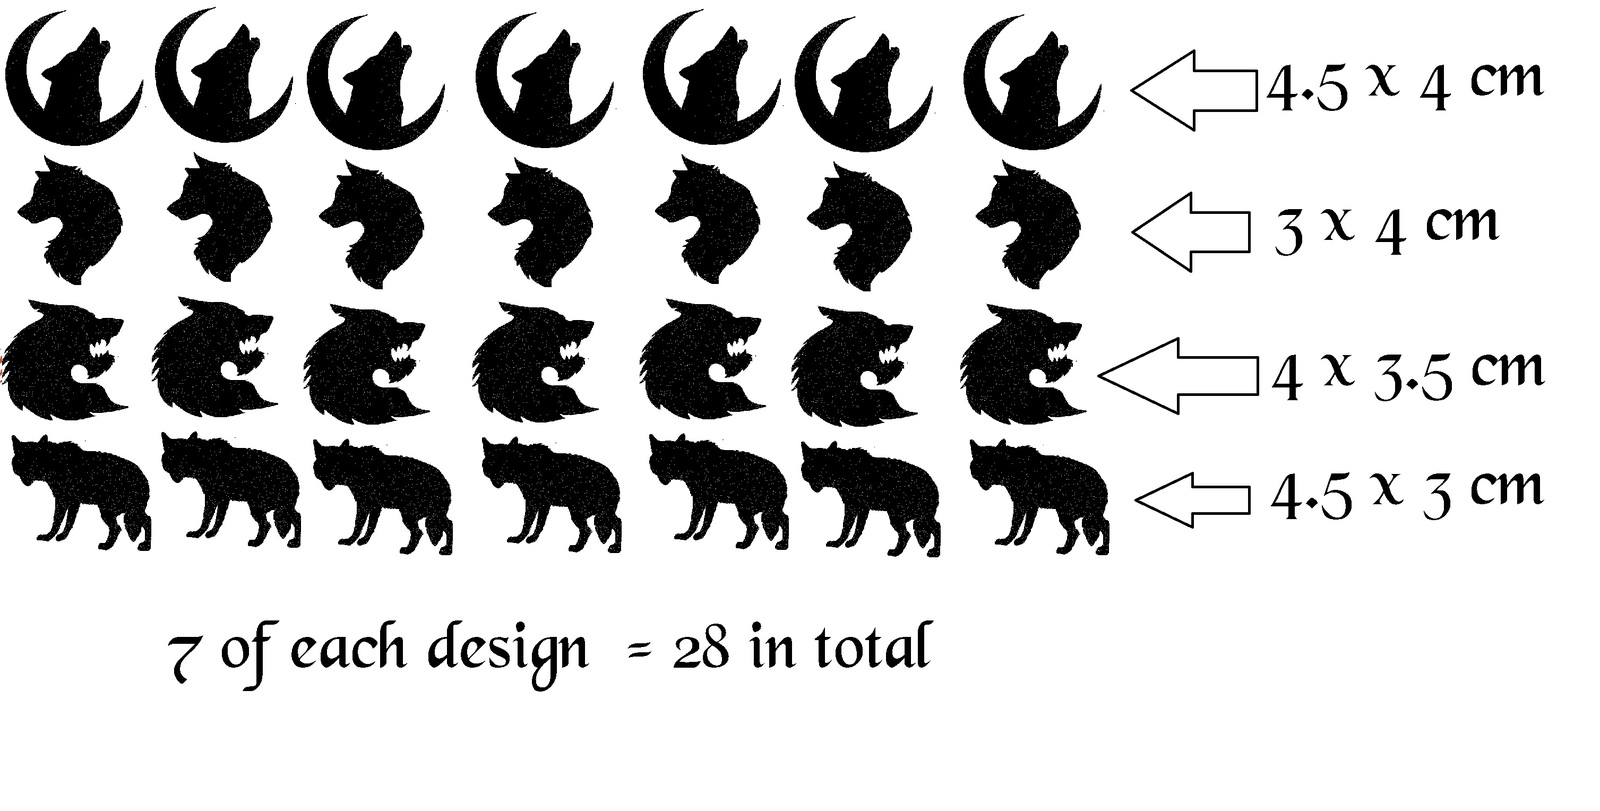 Vinyl 200 Cm Breed Wolf Black Vinyl Stickers And 50 Similar Items